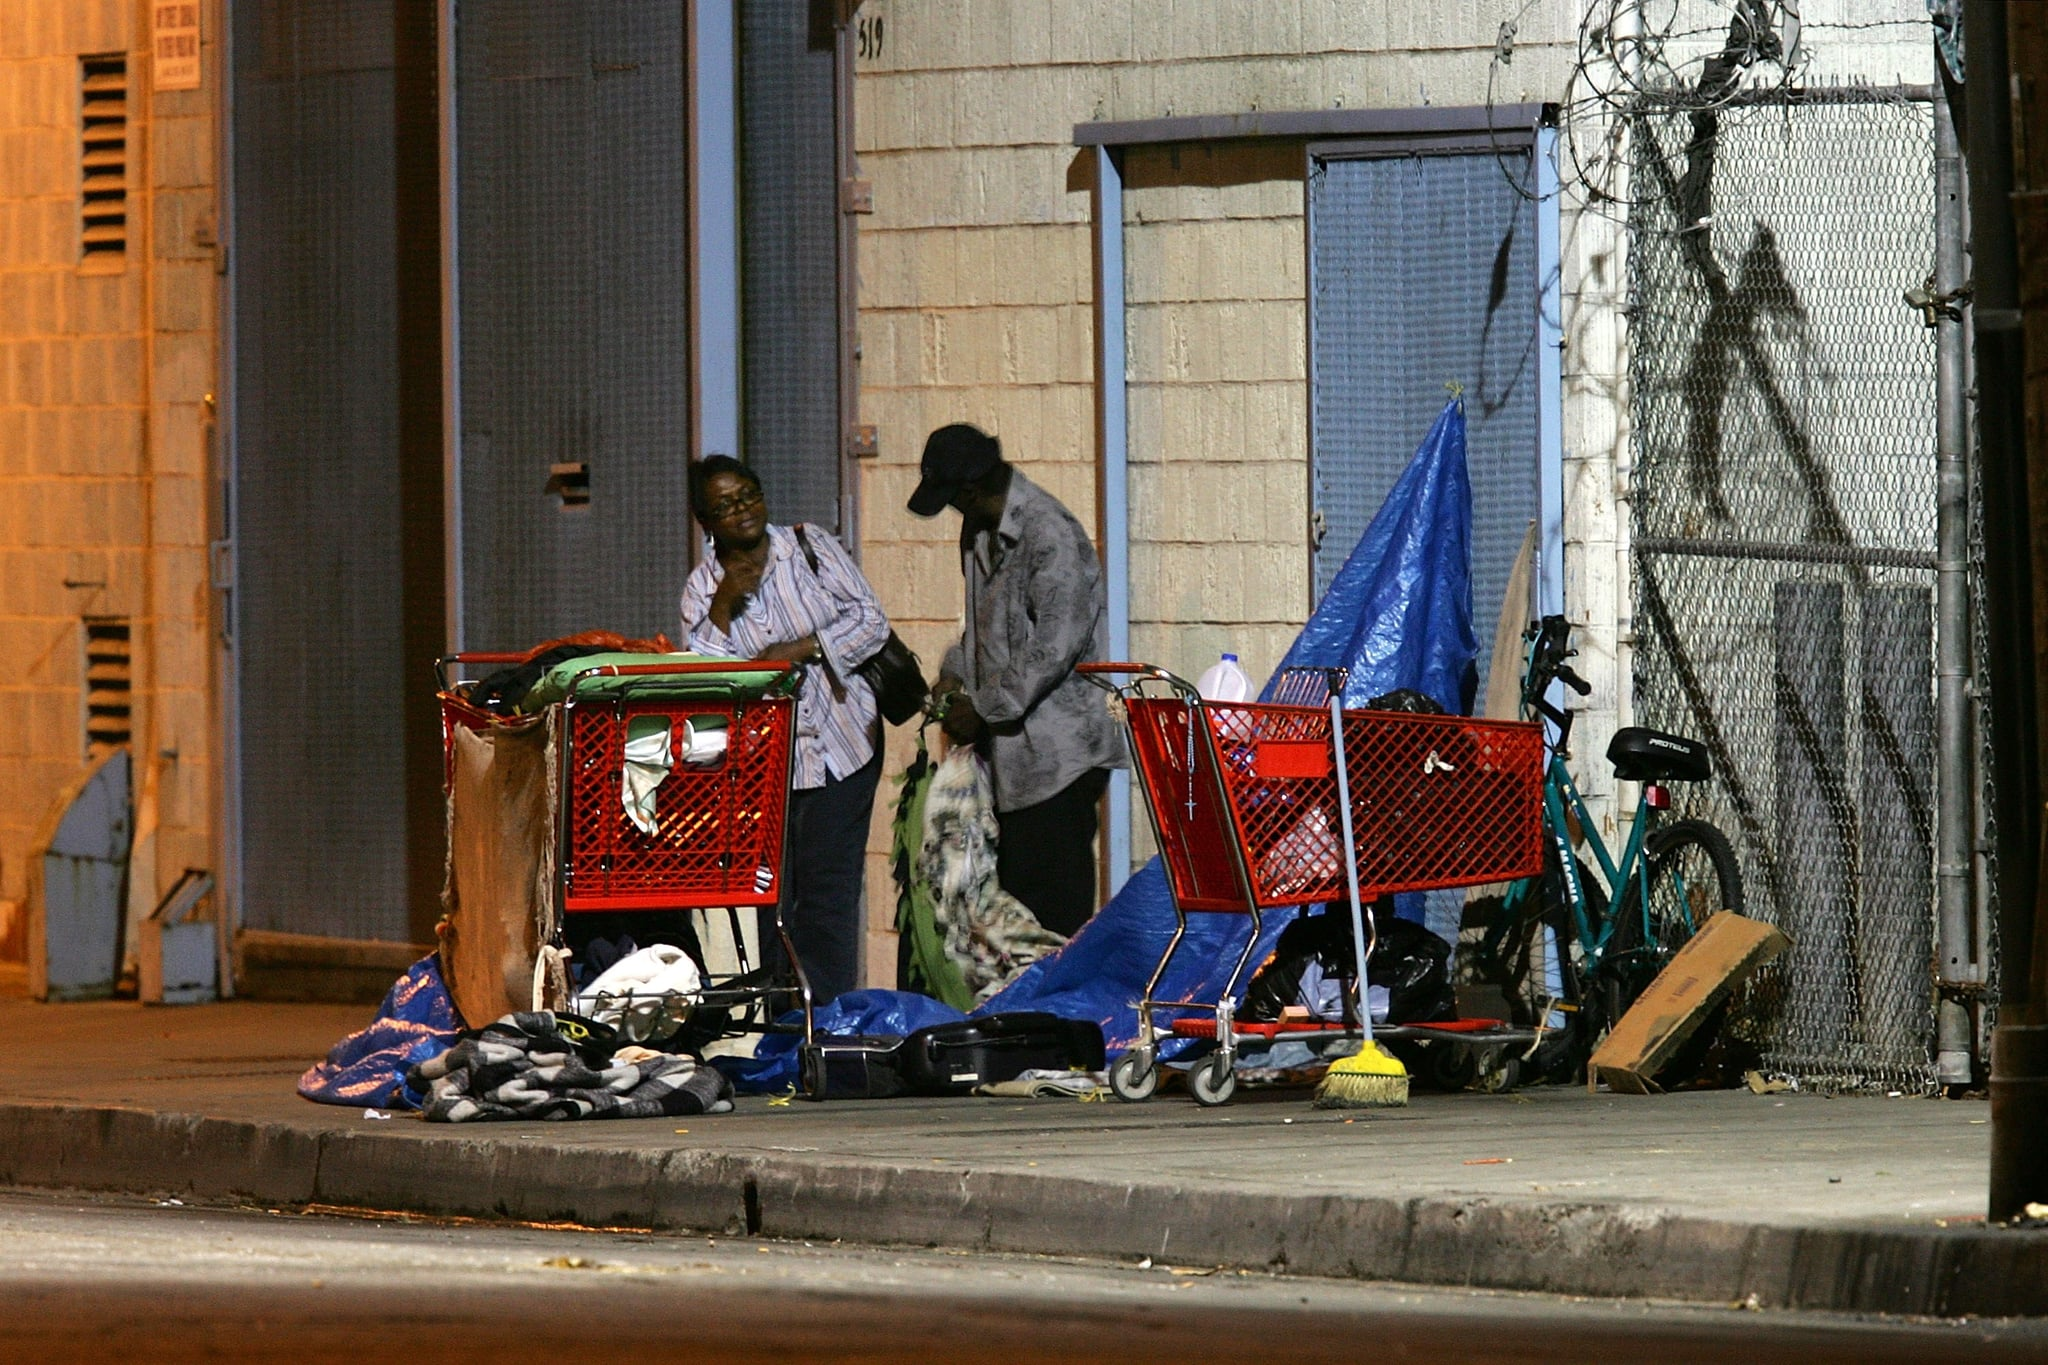 LOS ANGELES, CA - OCTOBER 12:  A homeless couple gets up before dawn to dismantle their encampment before businesses open October 12, 2007 in the downtown Skid Row area of Los Angeles, California. Los Angeles city officials recently settled a 2003 lawsuit brought by advocates for homeless skid row residents who complained of being arrested for sleeping on sidewalks, despite having nowhere else to go. Under the new deal, people can sleep on Los Angeles sidewalks between 9 p.m. to 6 a.m. as long as they do not block doorways or driveways, or completely block the sidewalk. Los Angeles is often referred to as the homeless capital of the nation because of its estimated 40,144 people living on city streets and 73,000 homeless spread across the county, according to recent figures attributed to the Los Angeles Homeless Services Authority, The 73,000 homeless include 10,000 minors, 24,505 people suffering from a mental illness, 8,453 military veterans, and nearly 7,200 victims of domestic abuse.  (Photo by David McNew/Getty Images)